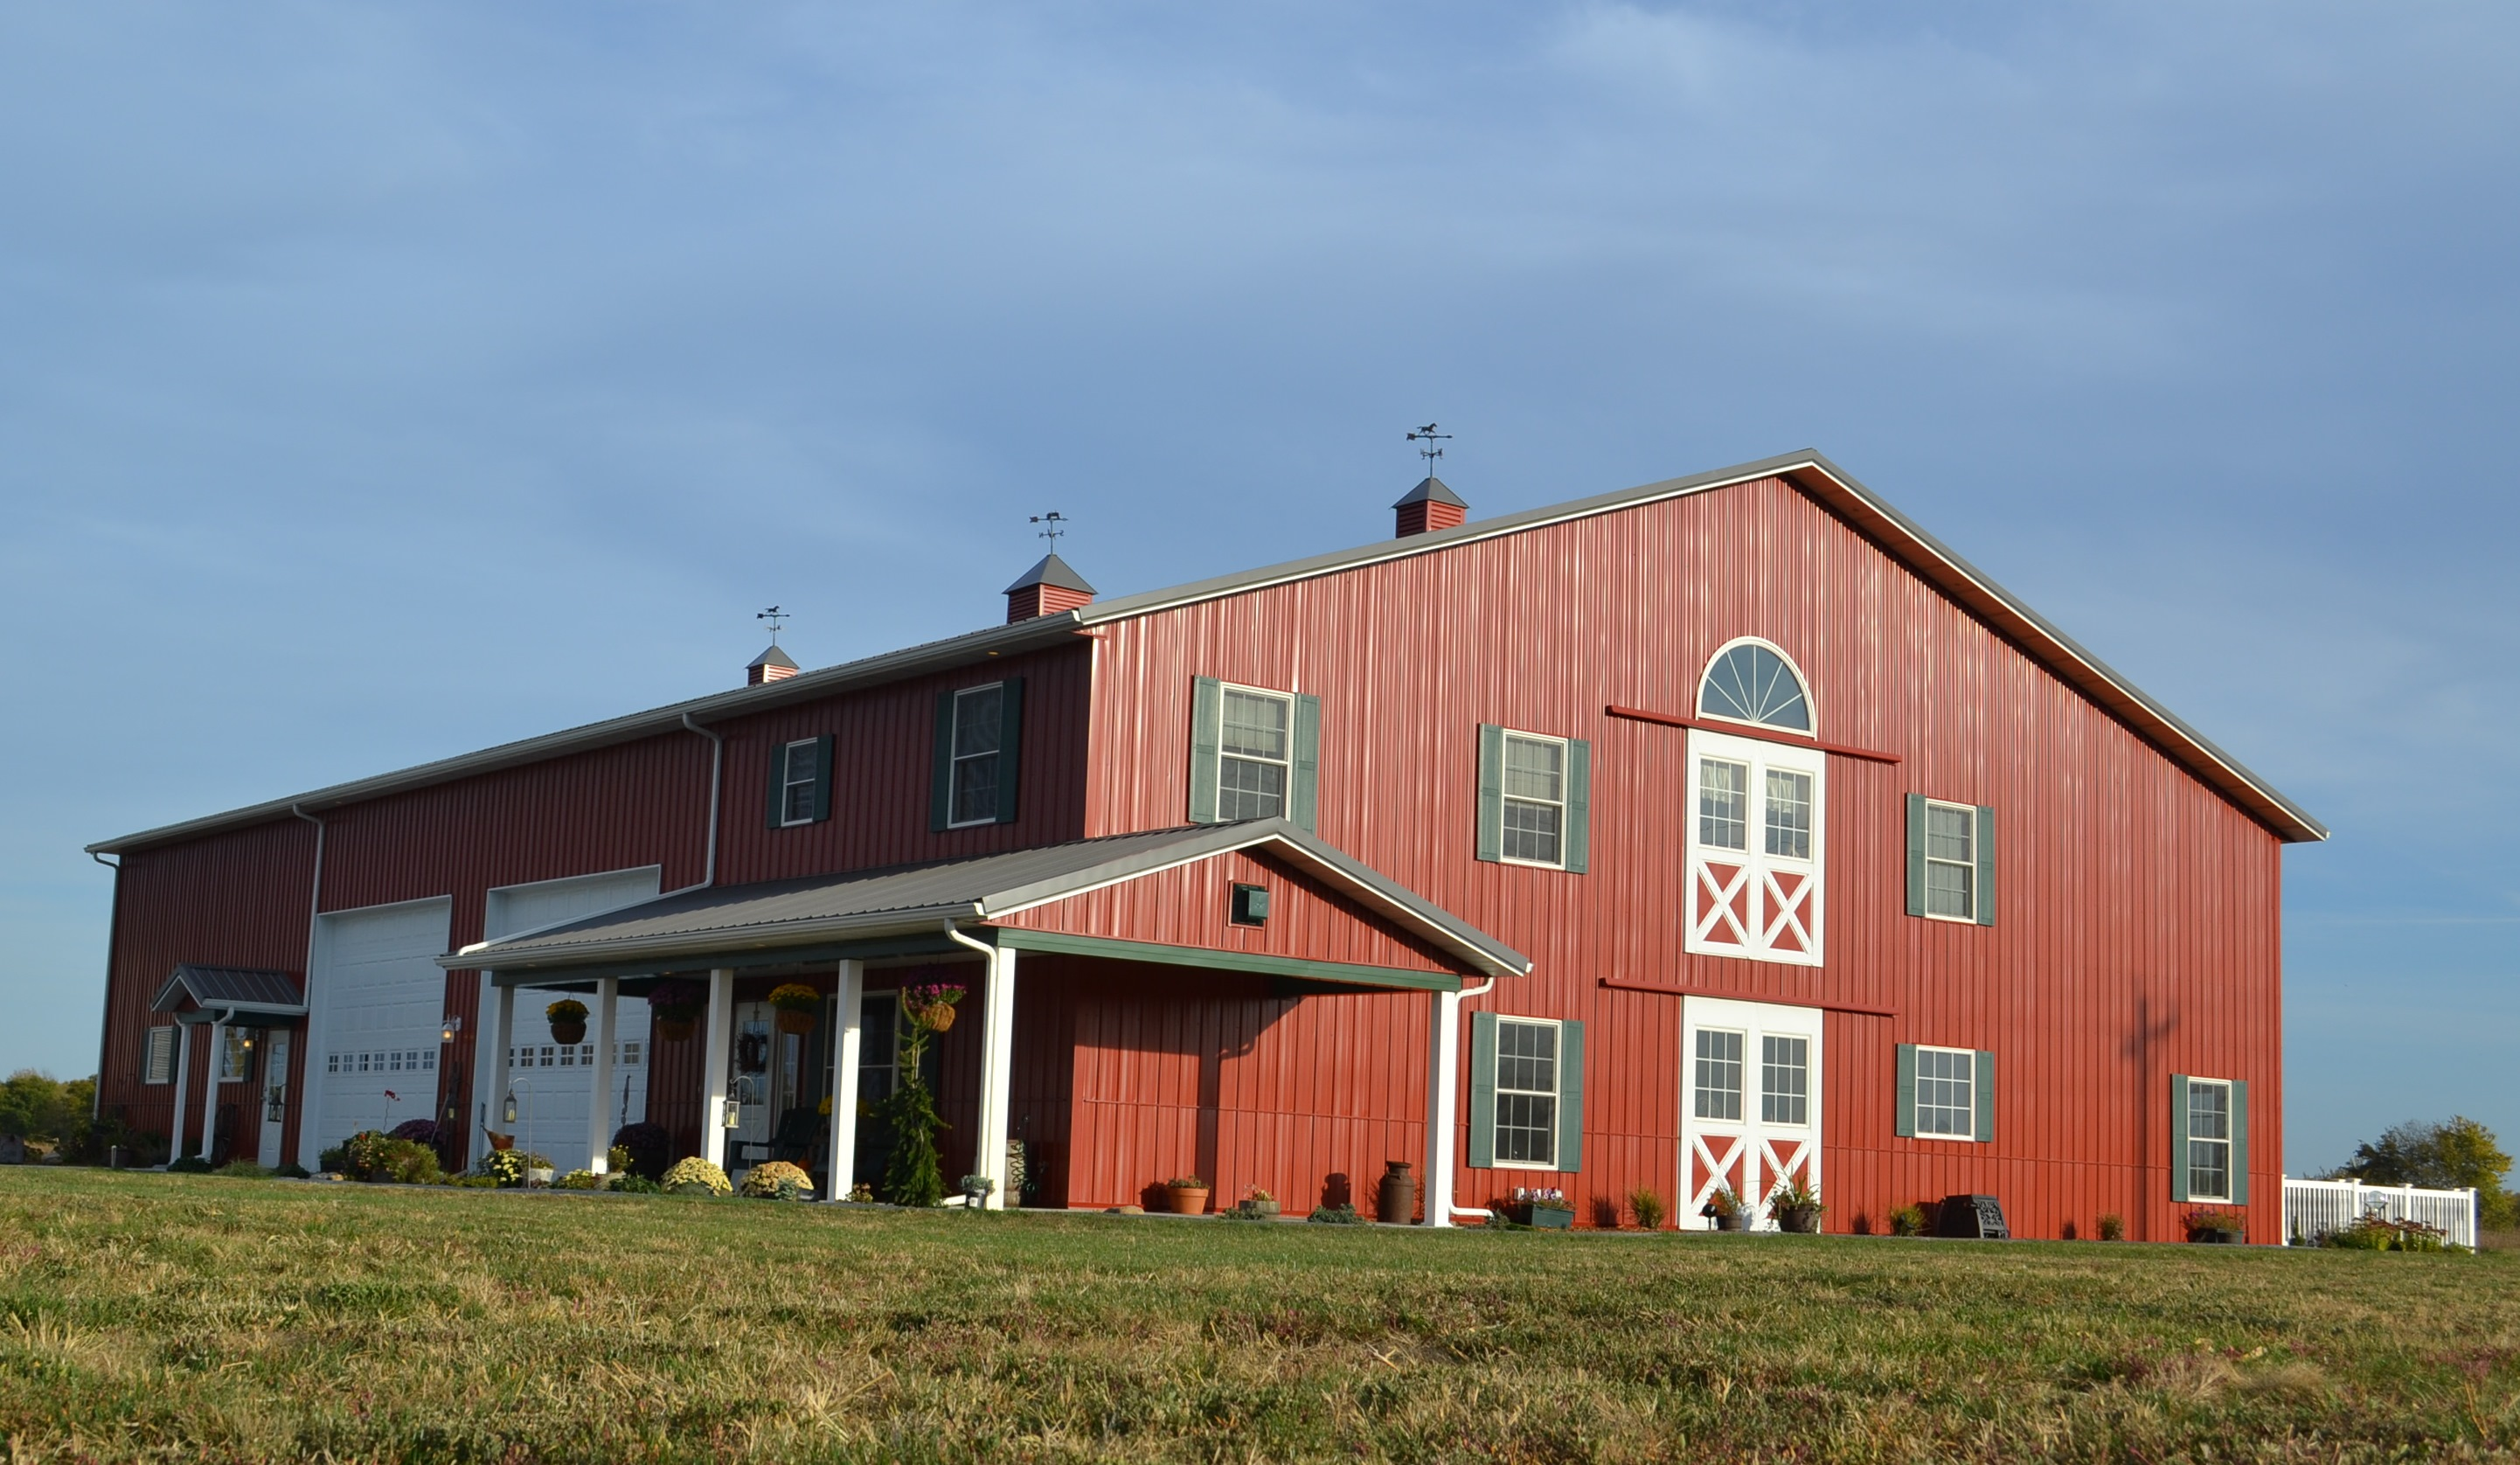 Galvanized Gooseneck Light Adds Fun Element To New Barn